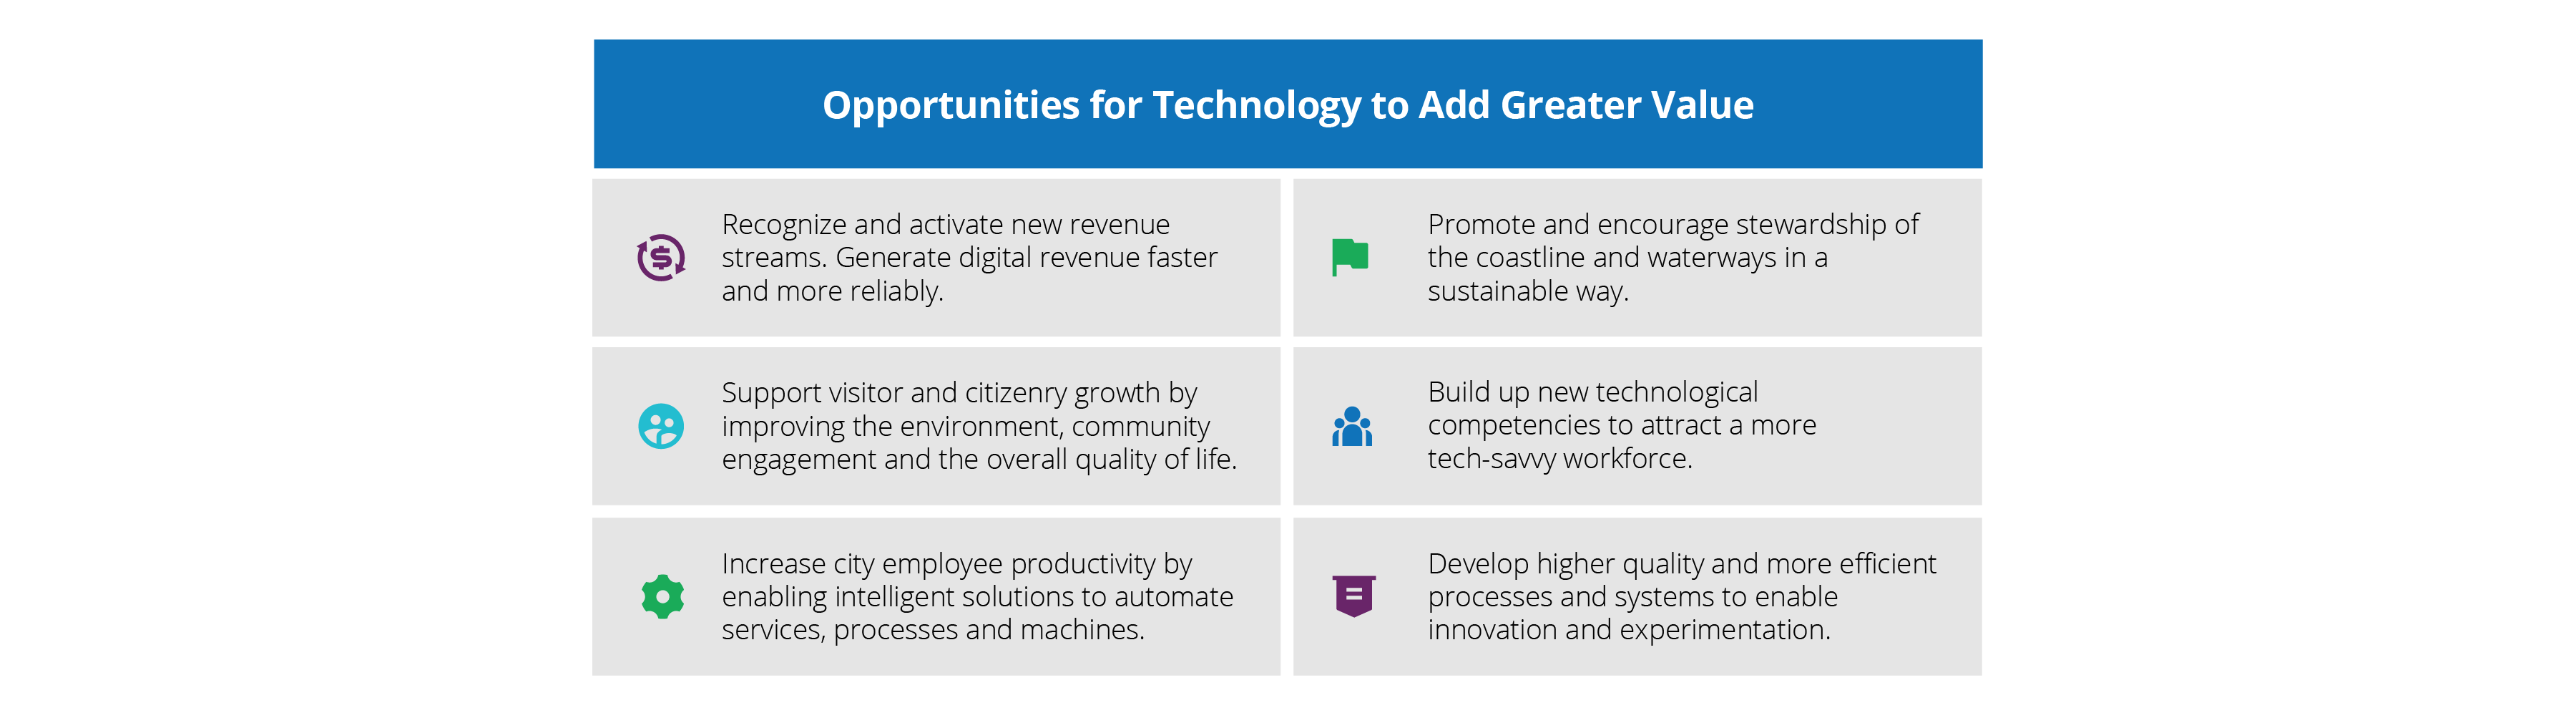 Opportunities for tech to add greater value